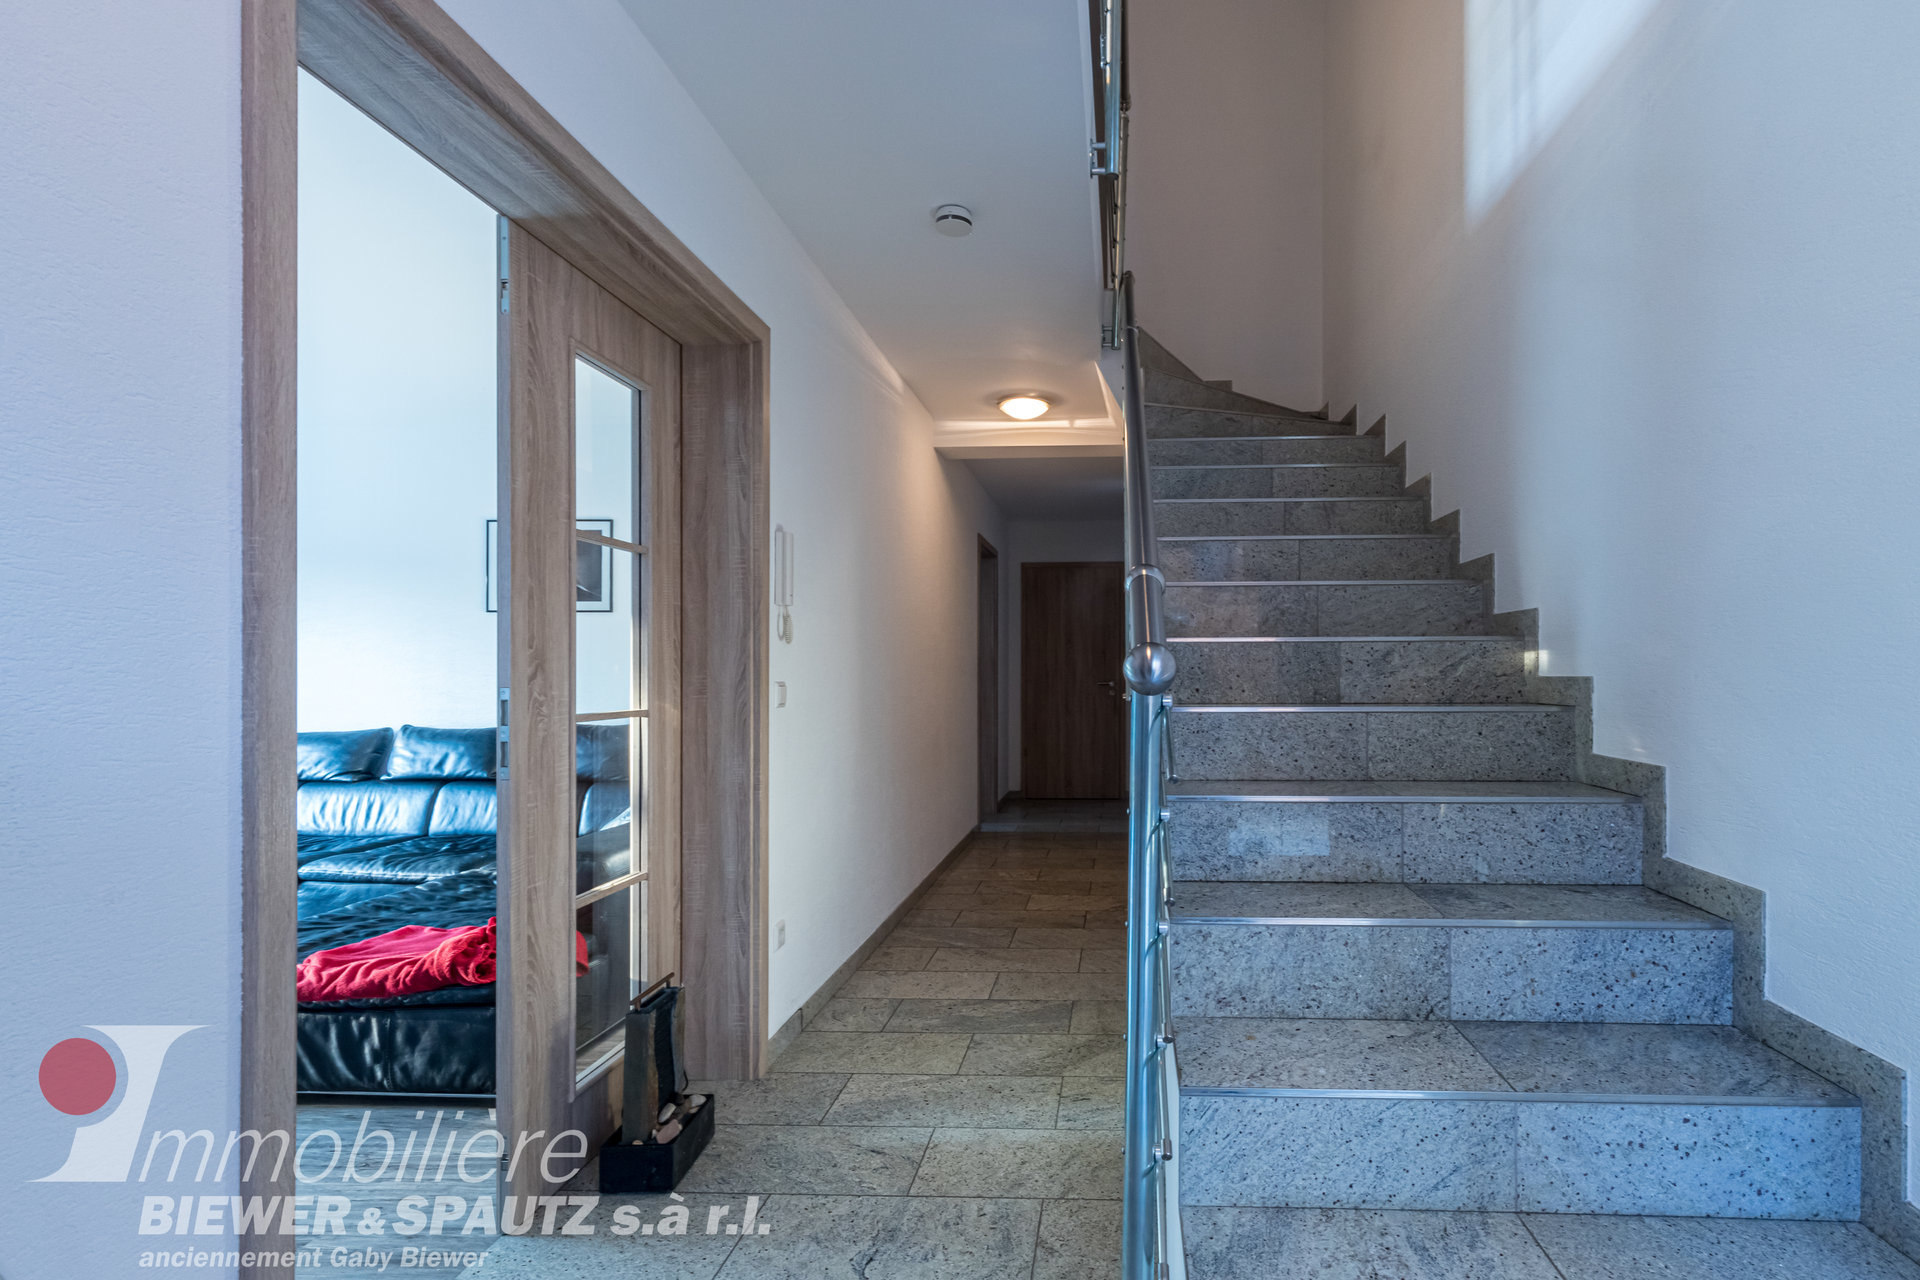 UNDER SALES AGREEMENT - triplex apartment with 4 bedrooms in Berbourg